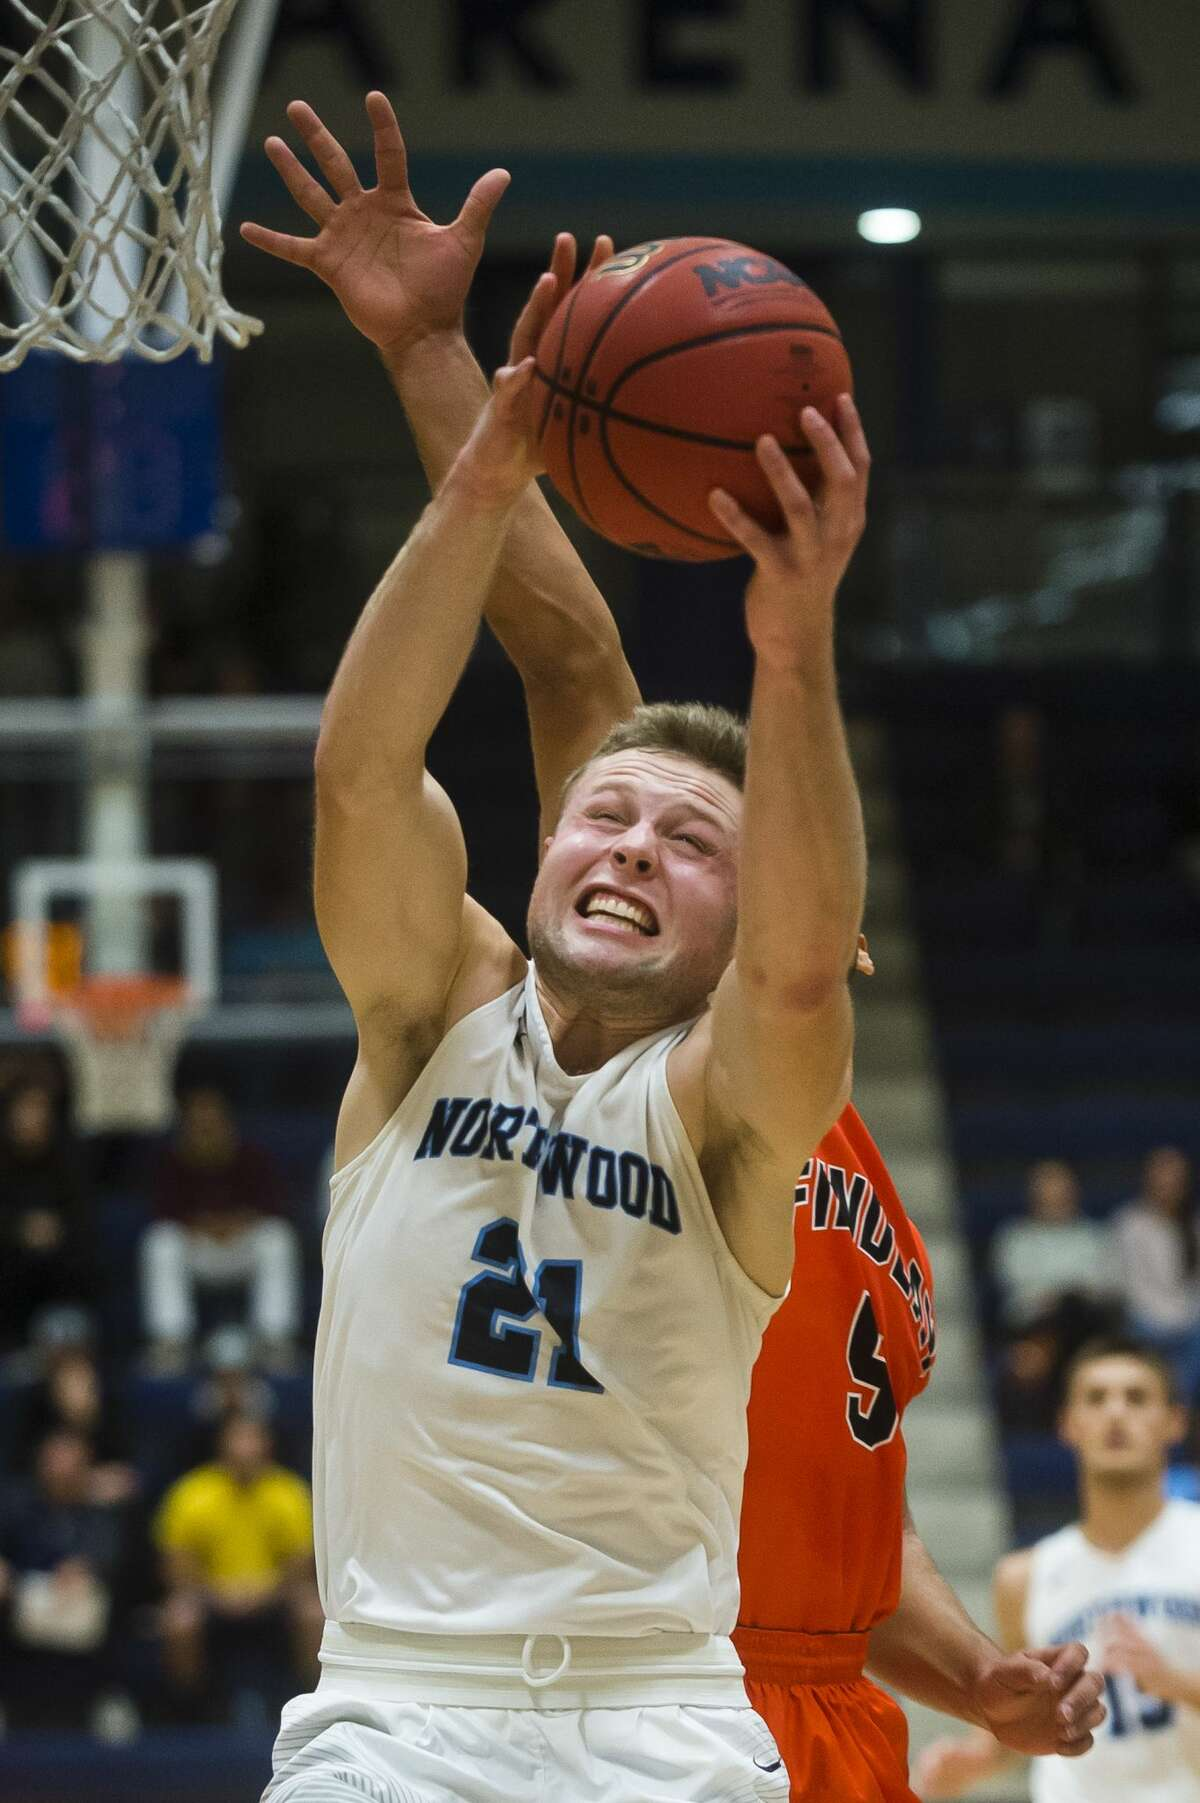 Northwood junior Zach Allread takes a shot during the Timberwolves' game against Findlay on Monday, Nov. 27, 2017 at Northwood University. (Katy Kildee/kkildee@mdn.net)